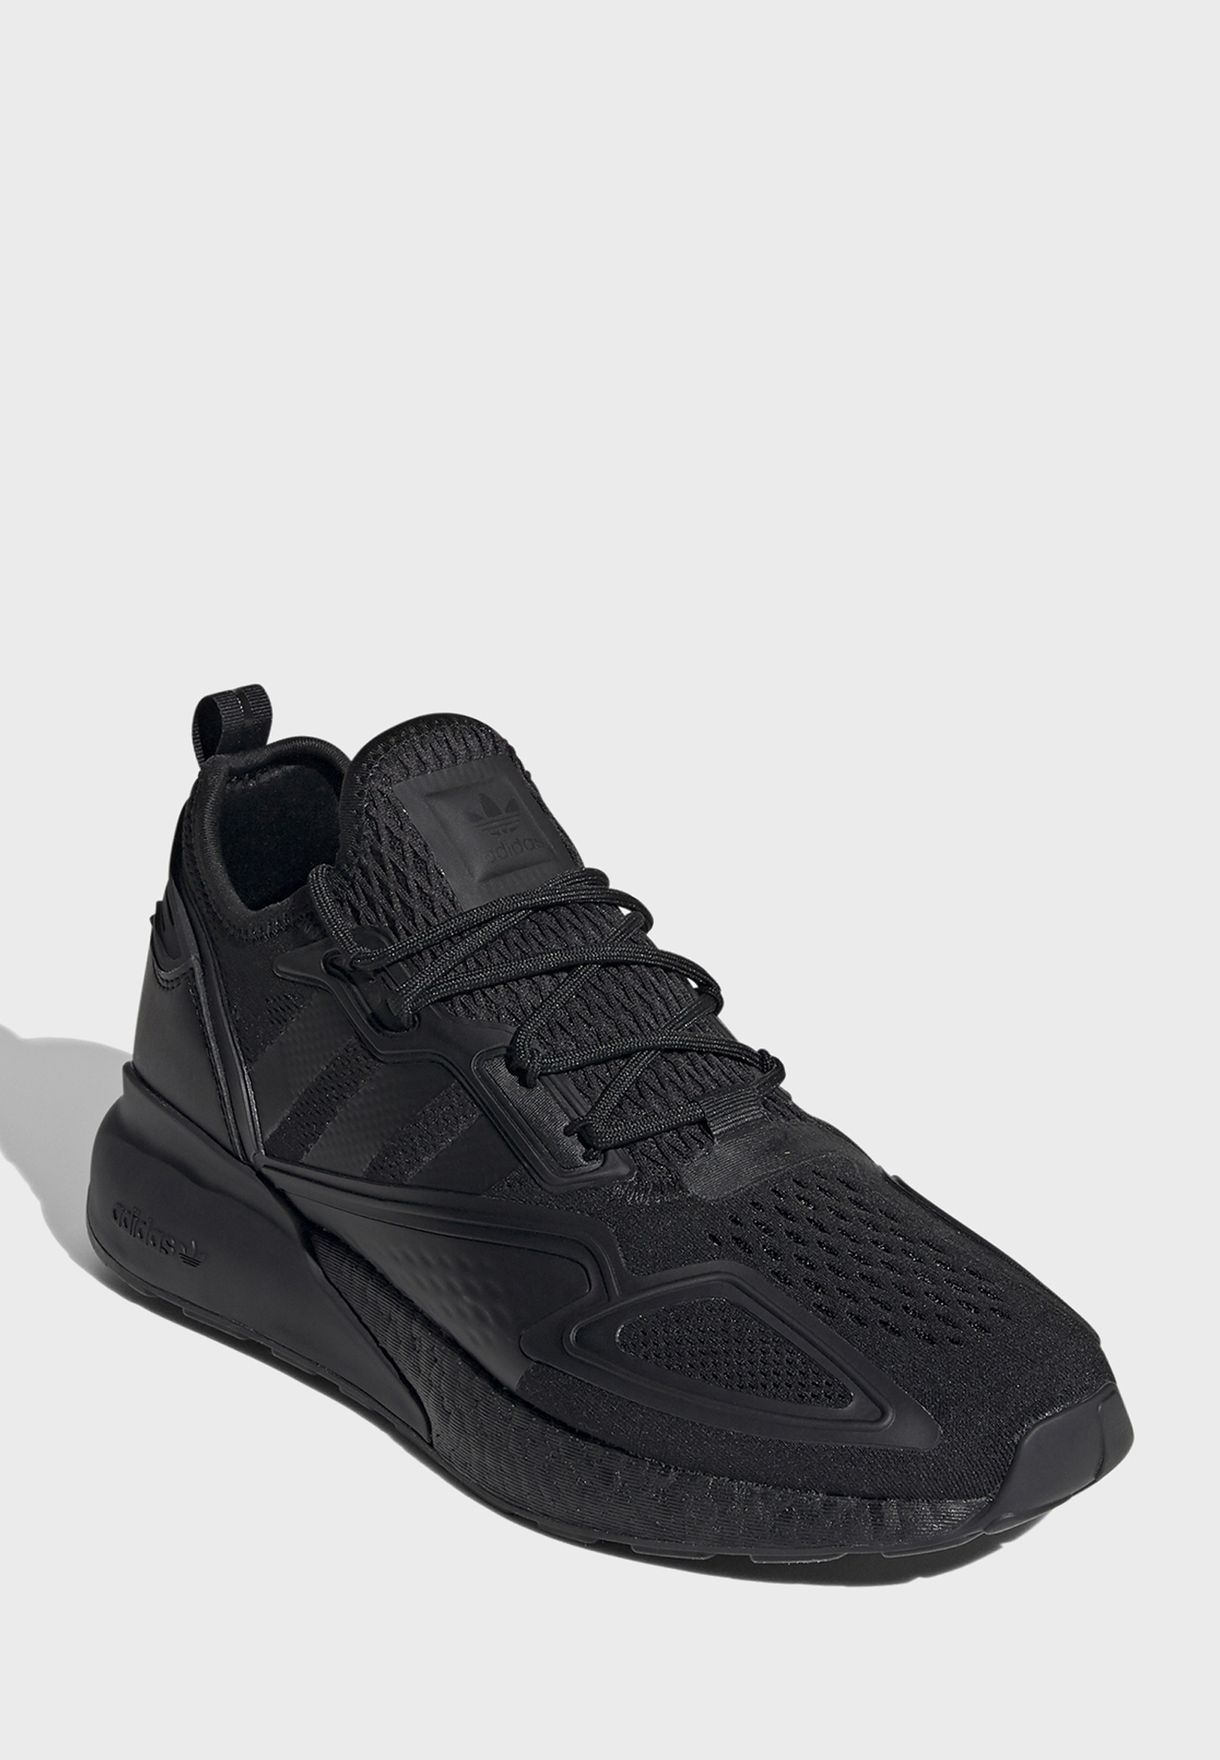 ZX 2K Boost Casual Men's Sneakers Shoes